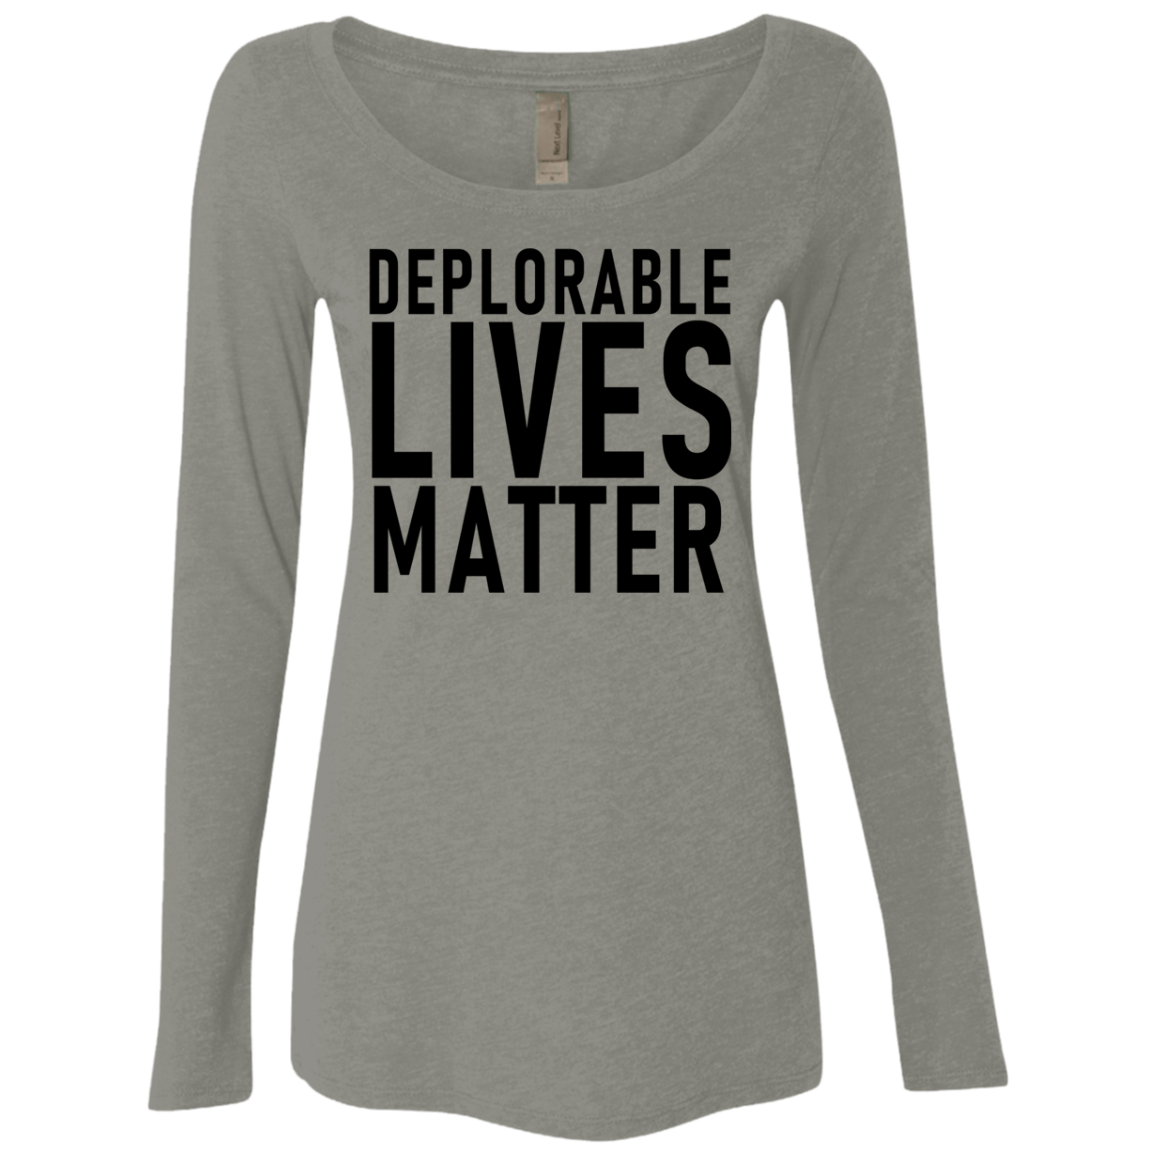 Deplorable Lives Matter Women's Long Sleeve Tee